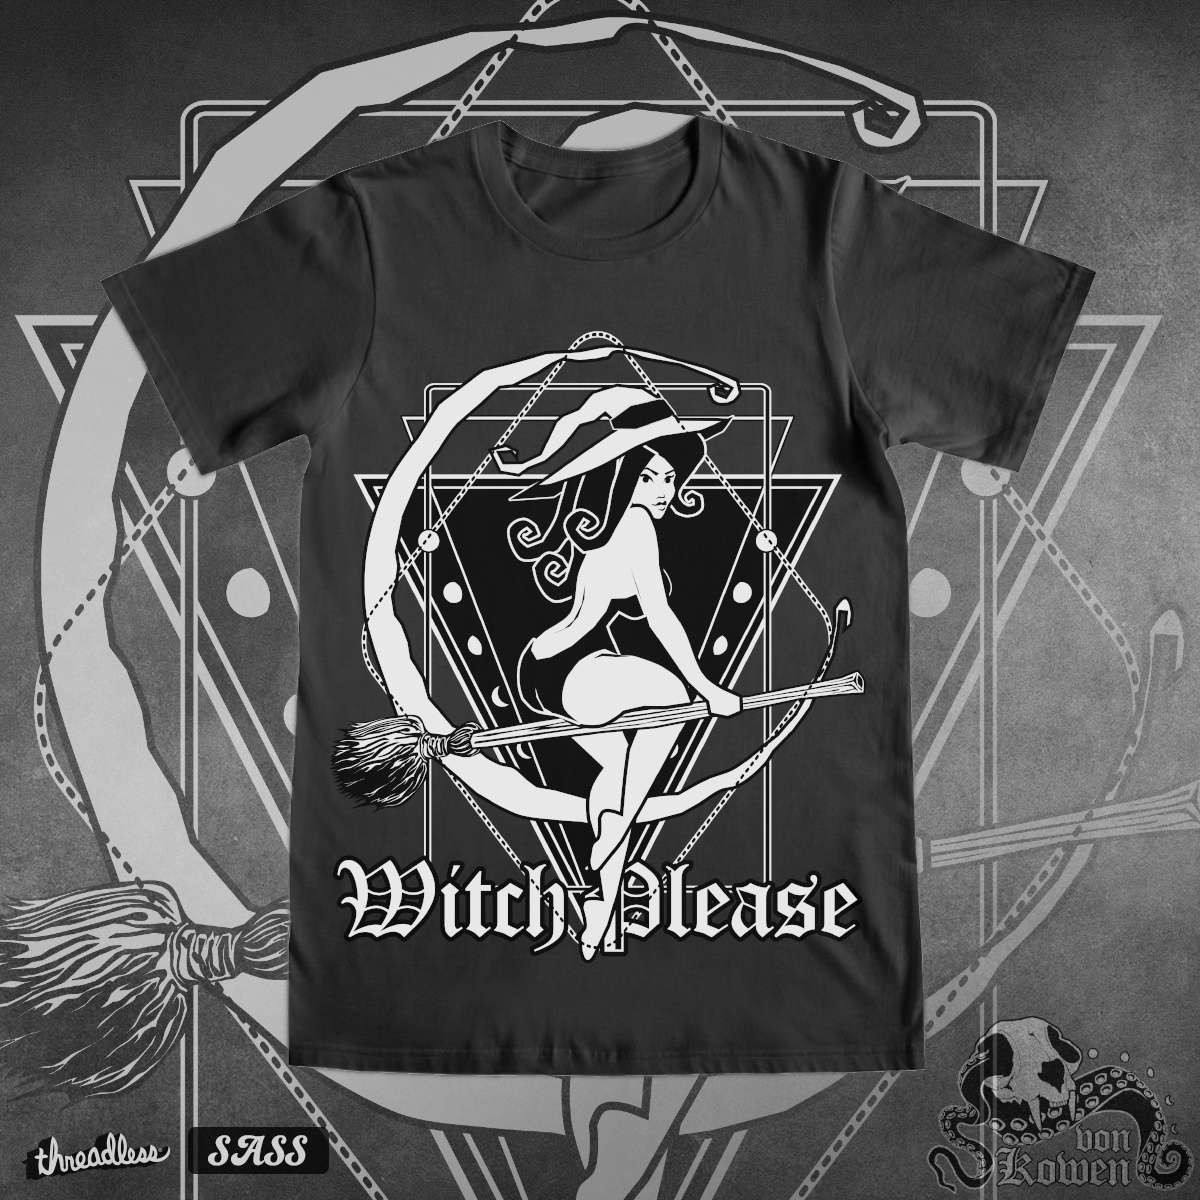 Witch Please, a cool t-shirt design